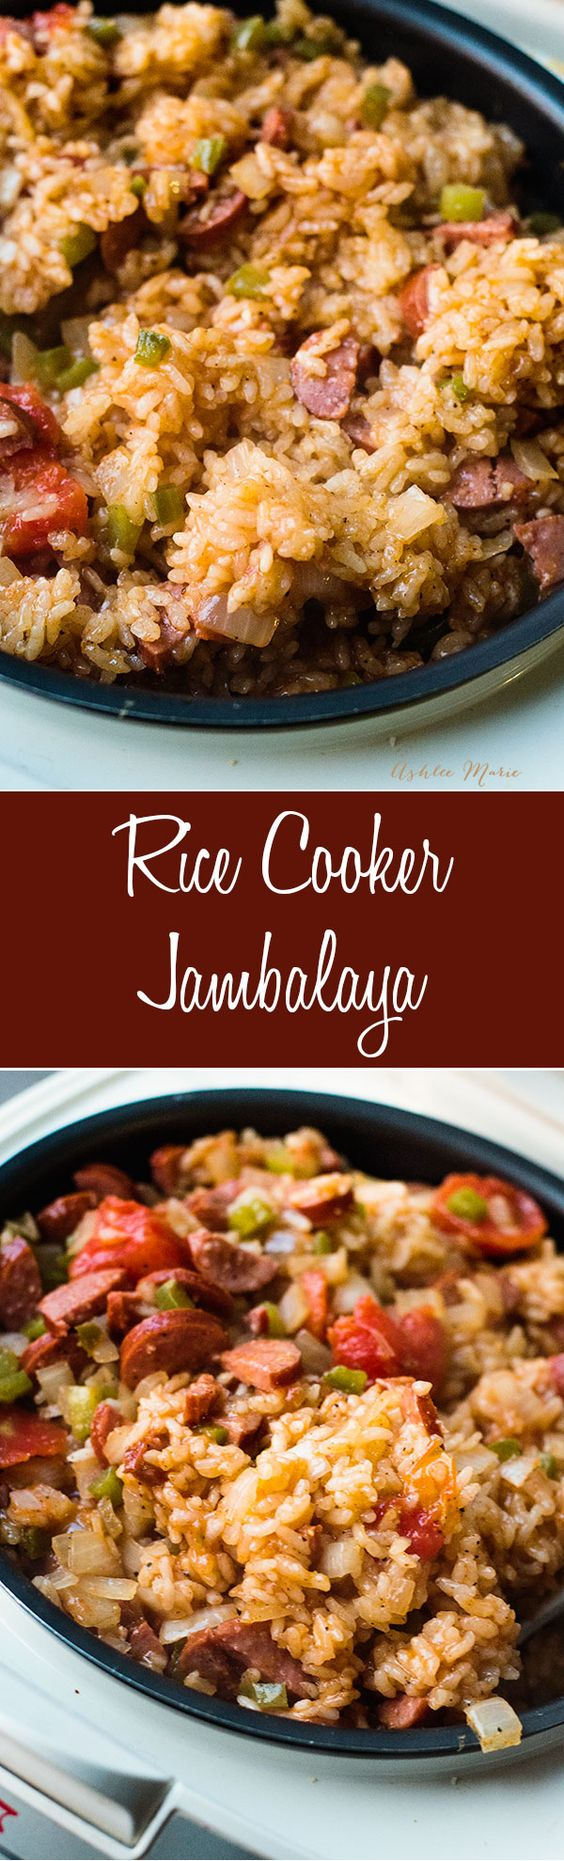 made in a rice cooker this spicy jambalaya is easy to make and tastes amazing